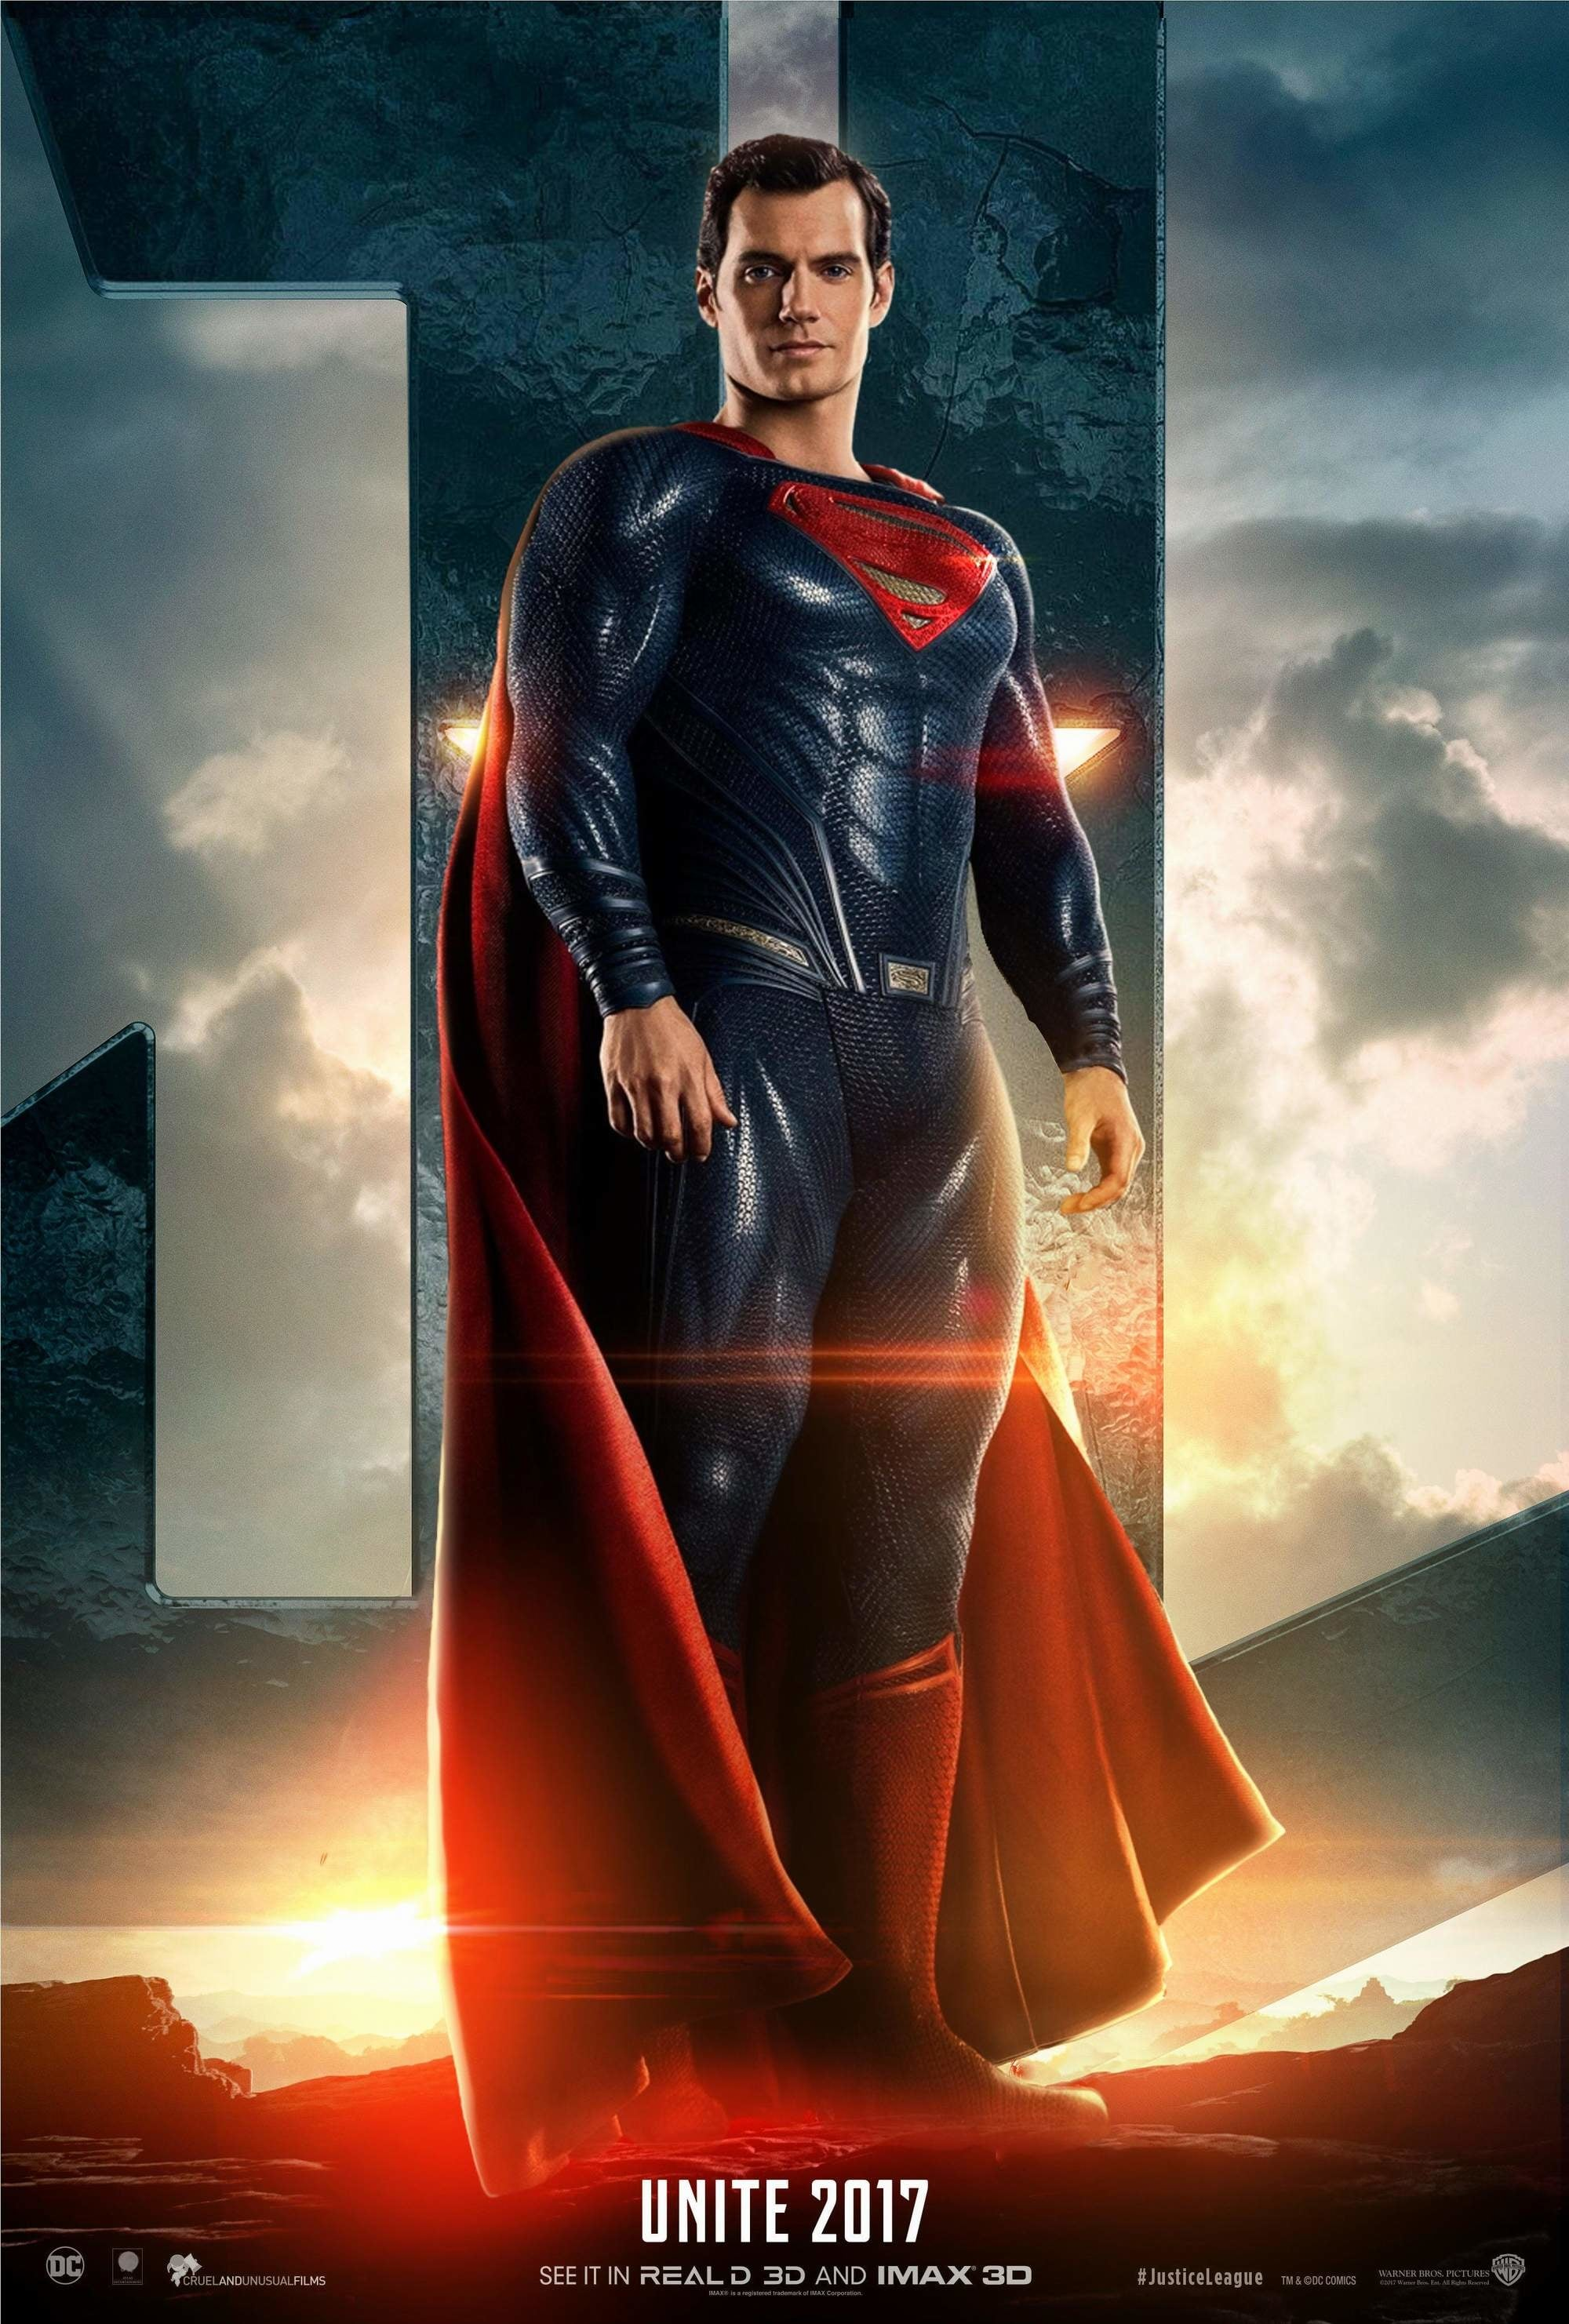 Justice League (2017) Poster - Henry Cavill as Superman